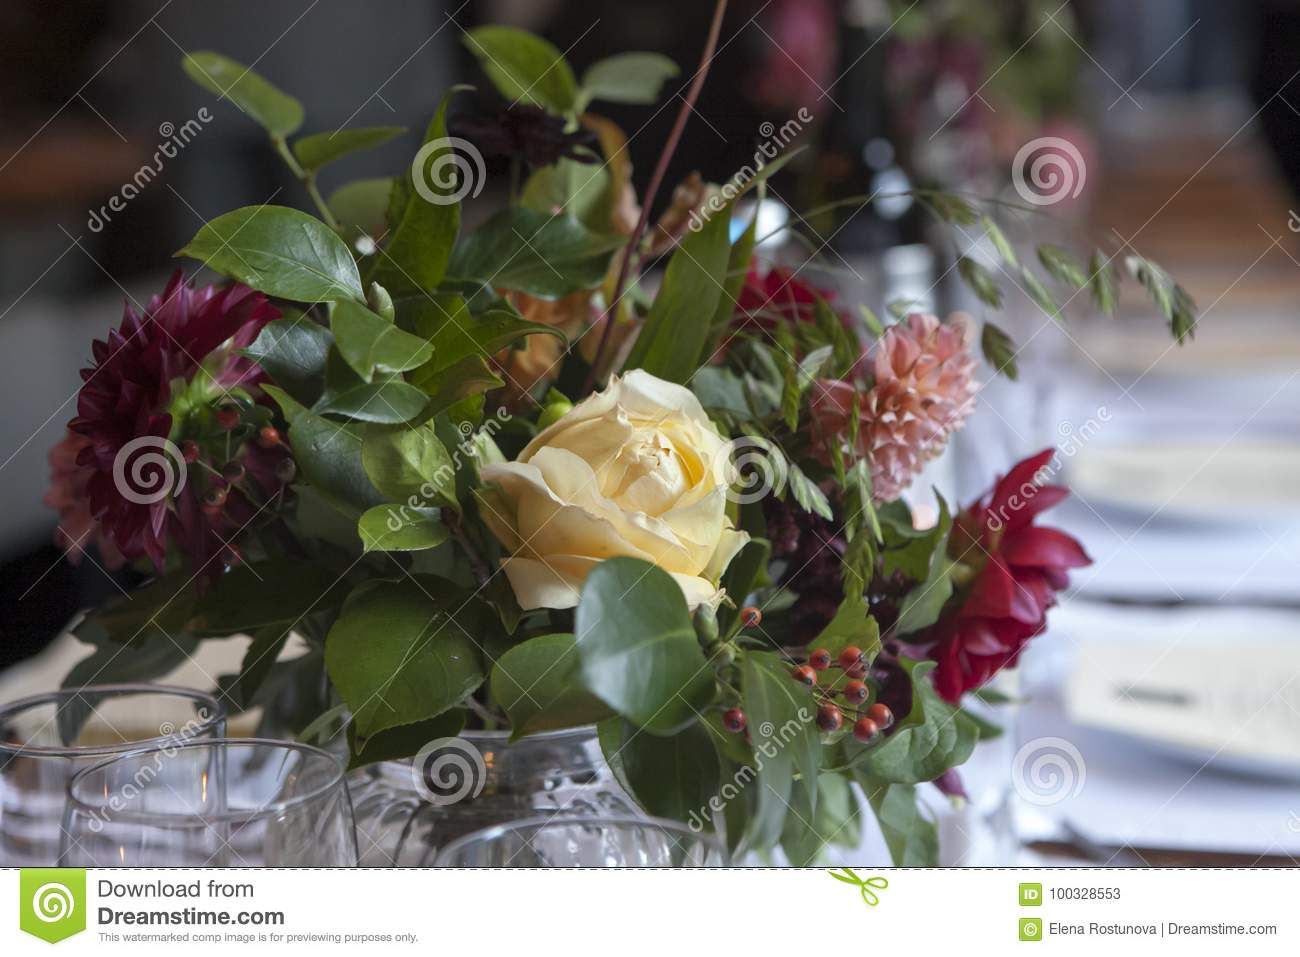 The Wedding Bouquet Of A Bride From Dahlias And Roses Decorates A